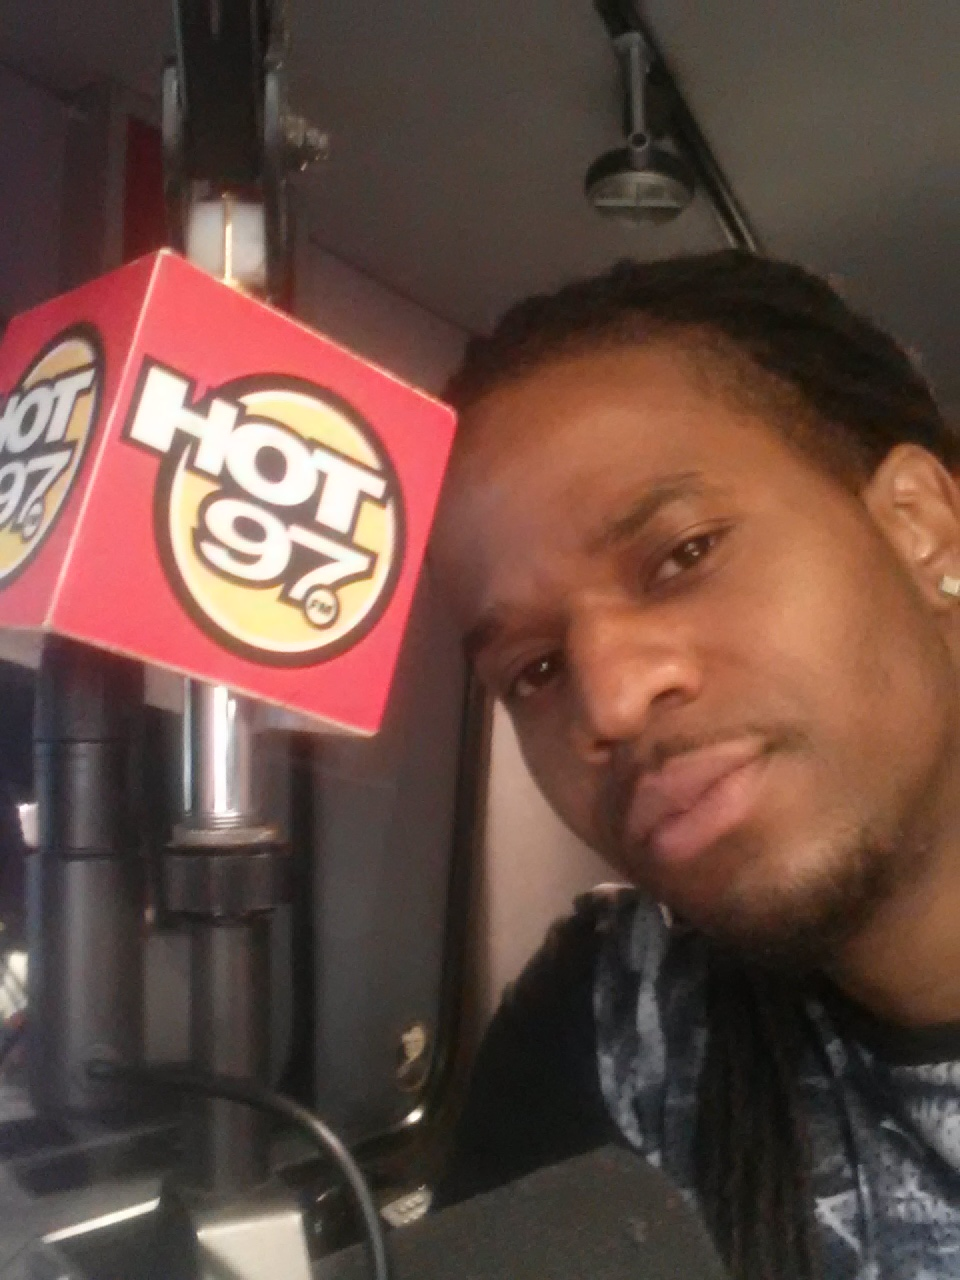 HOT 97 TAKING IT TO THE STREETS MAY 2014